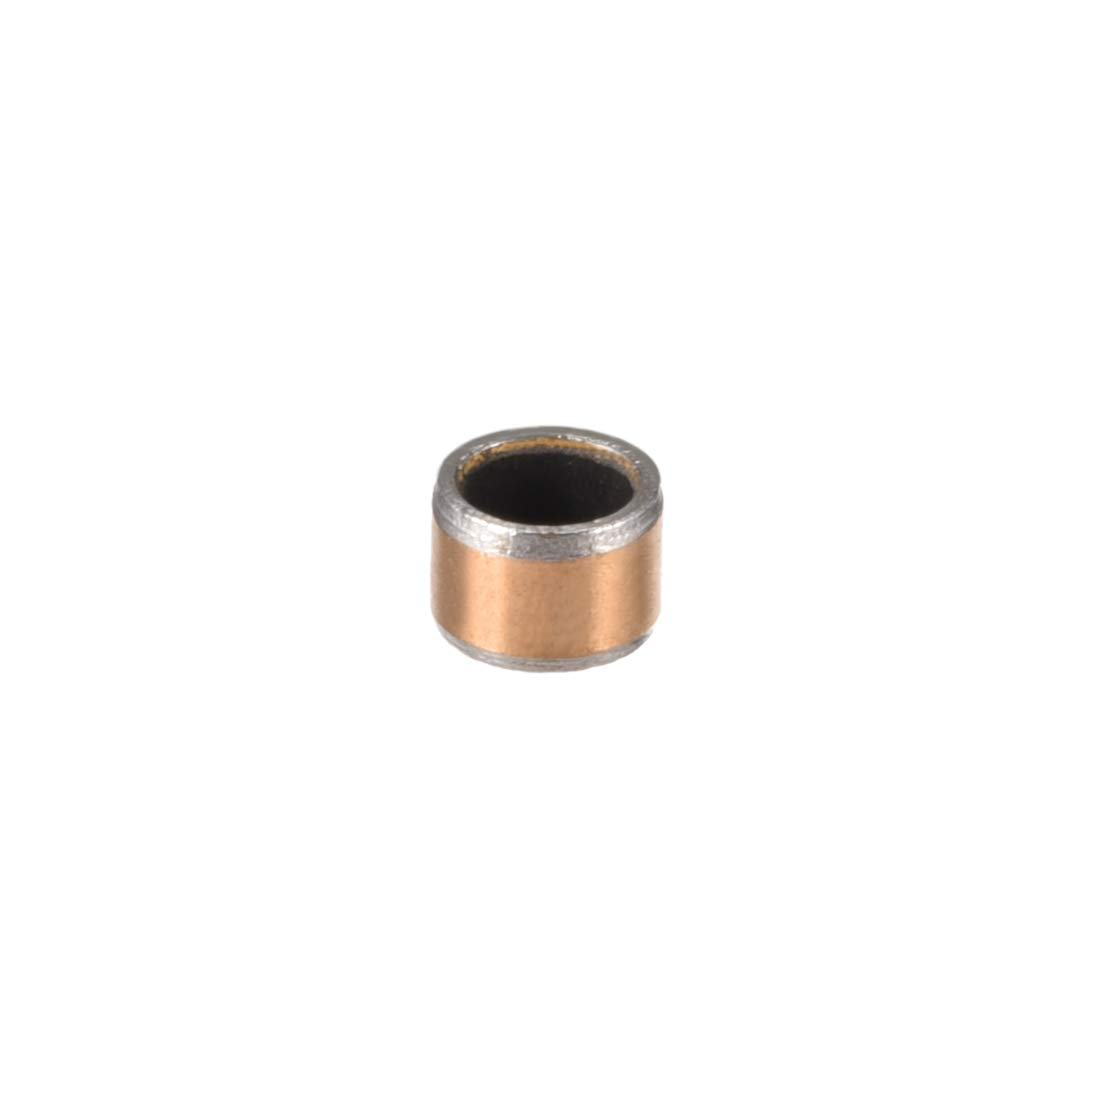 Pack of 1 uxcell/® Sleeve Bearing 3mm Bore x 5mm OD x 5mm Length Plain Bearings Wrapped Oilless Bushings